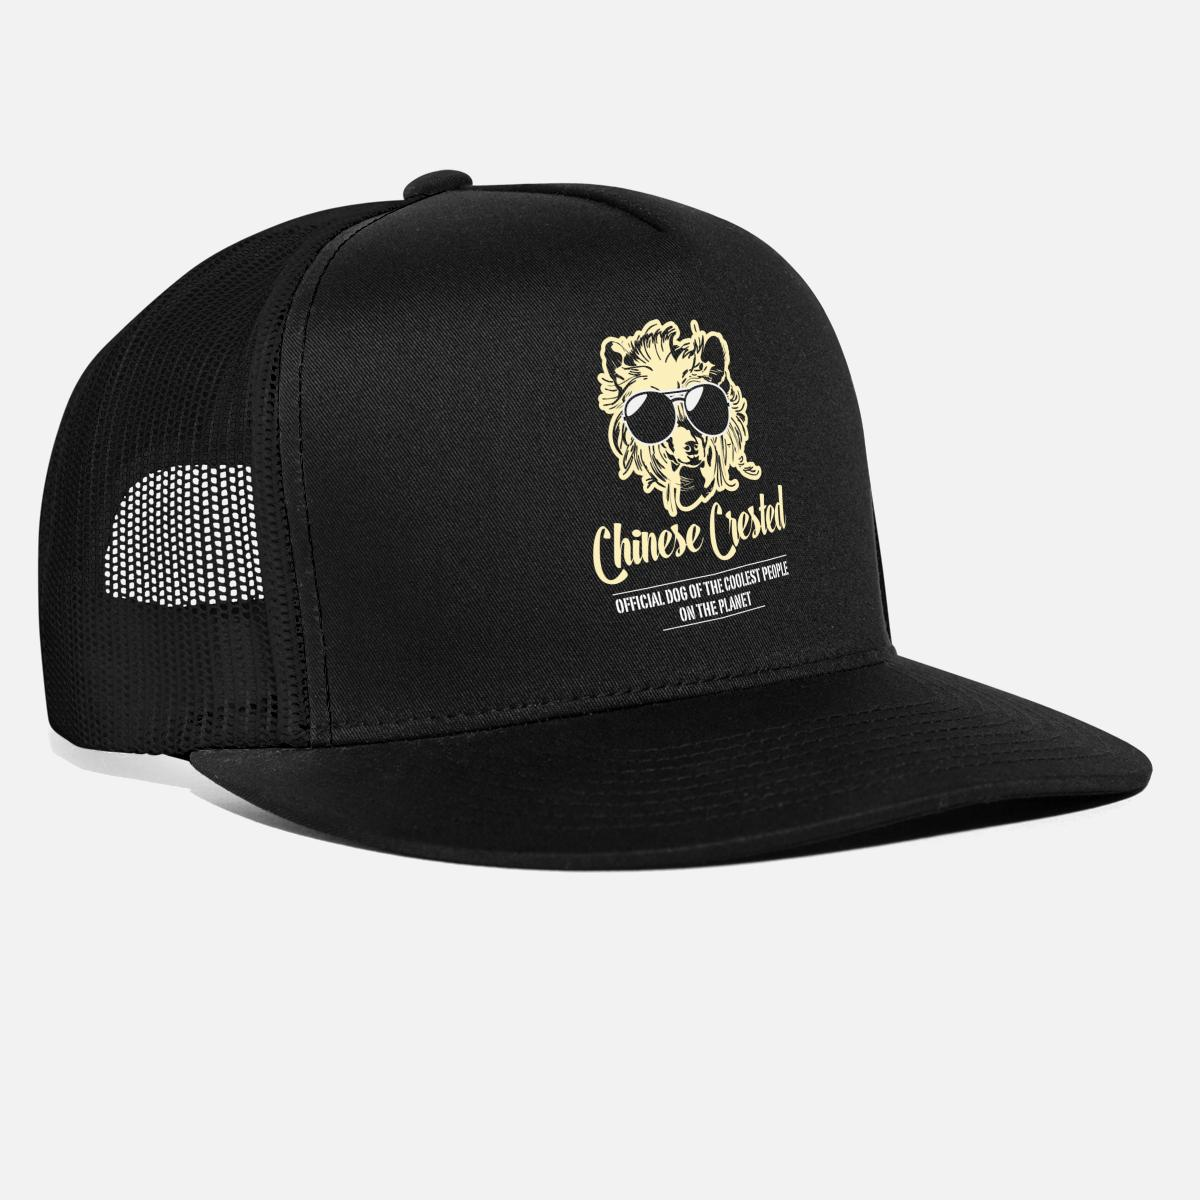 9a6ccd5c4d694 Chinese Crested Official Dog Of The Coolest People Trucker Cap ...